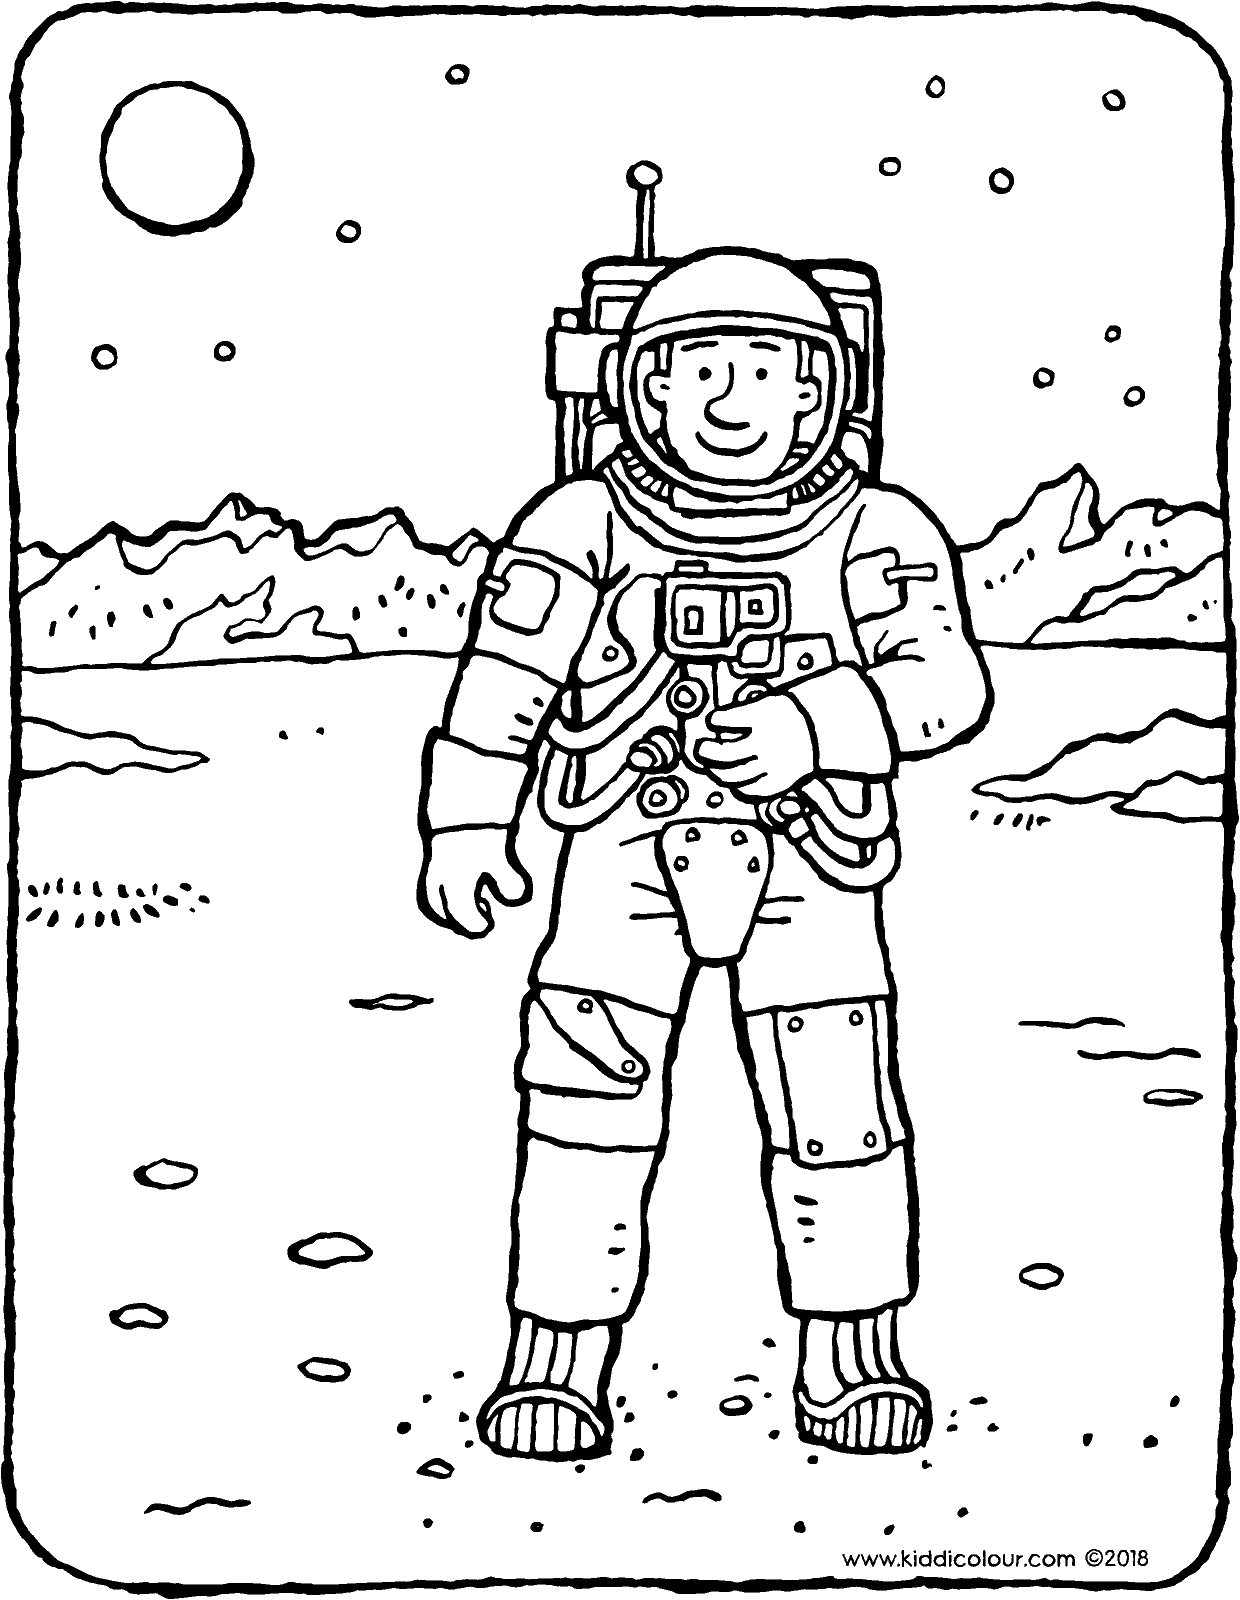 astronaut body coloring page astronaut kiddicolour astronaut page coloring body